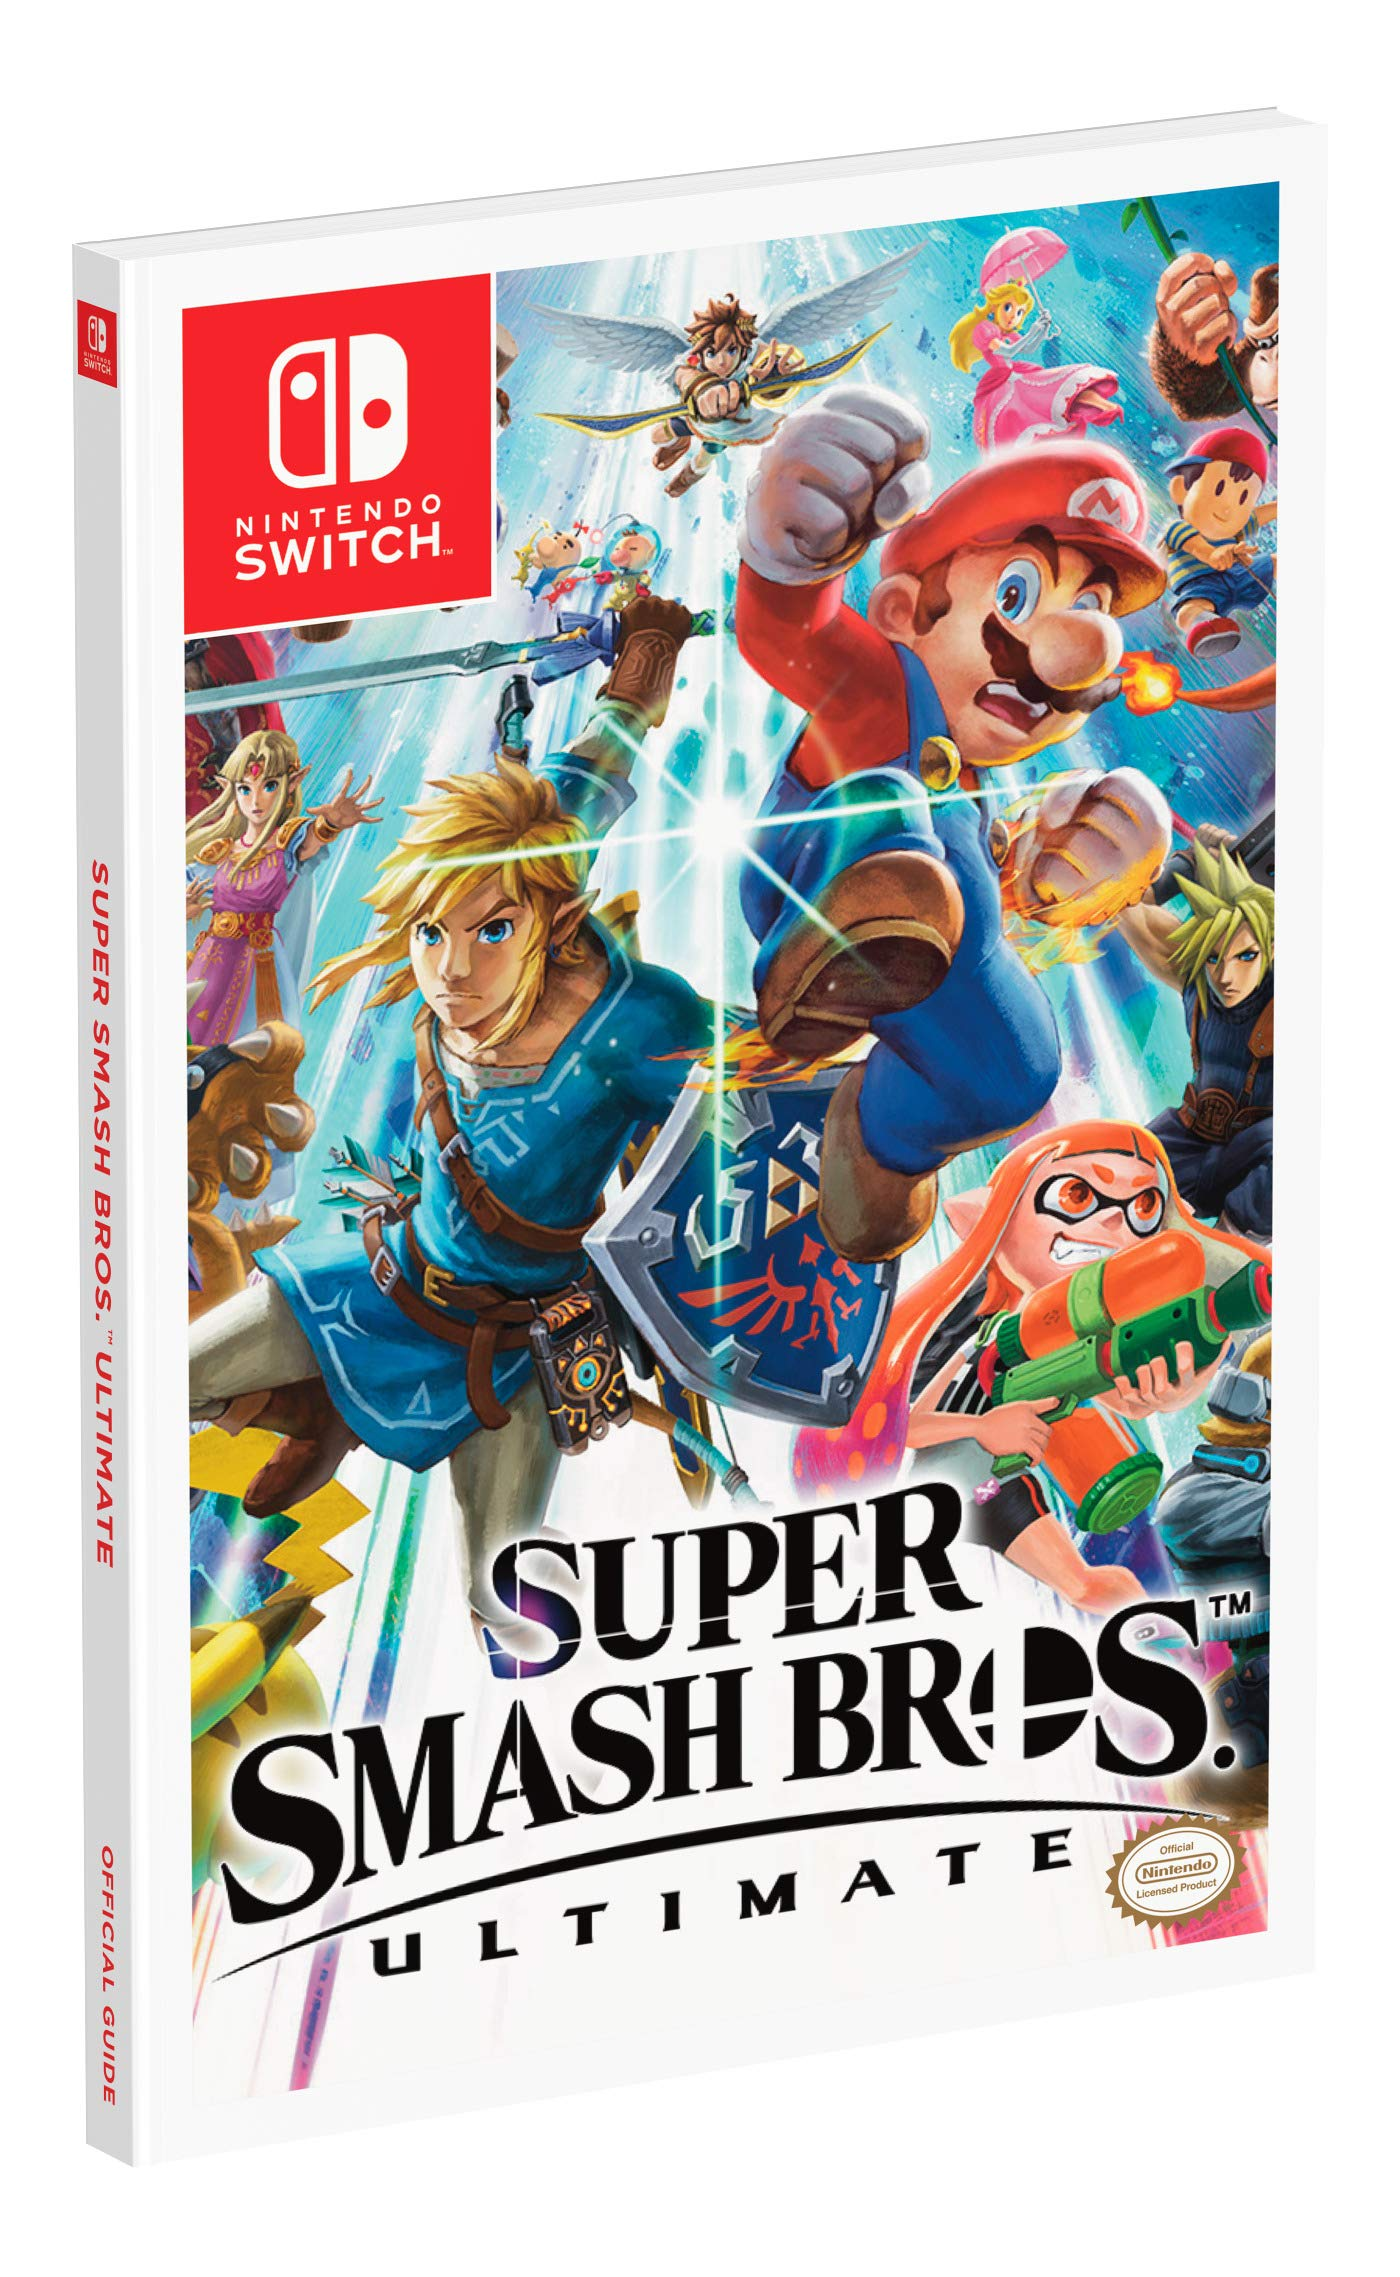 Super Smash Bros. Ultimate - Das offizielle Lösungsbuch: Amazon.es: Multiplayer Edizioni: Libros en idiomas extranjeros